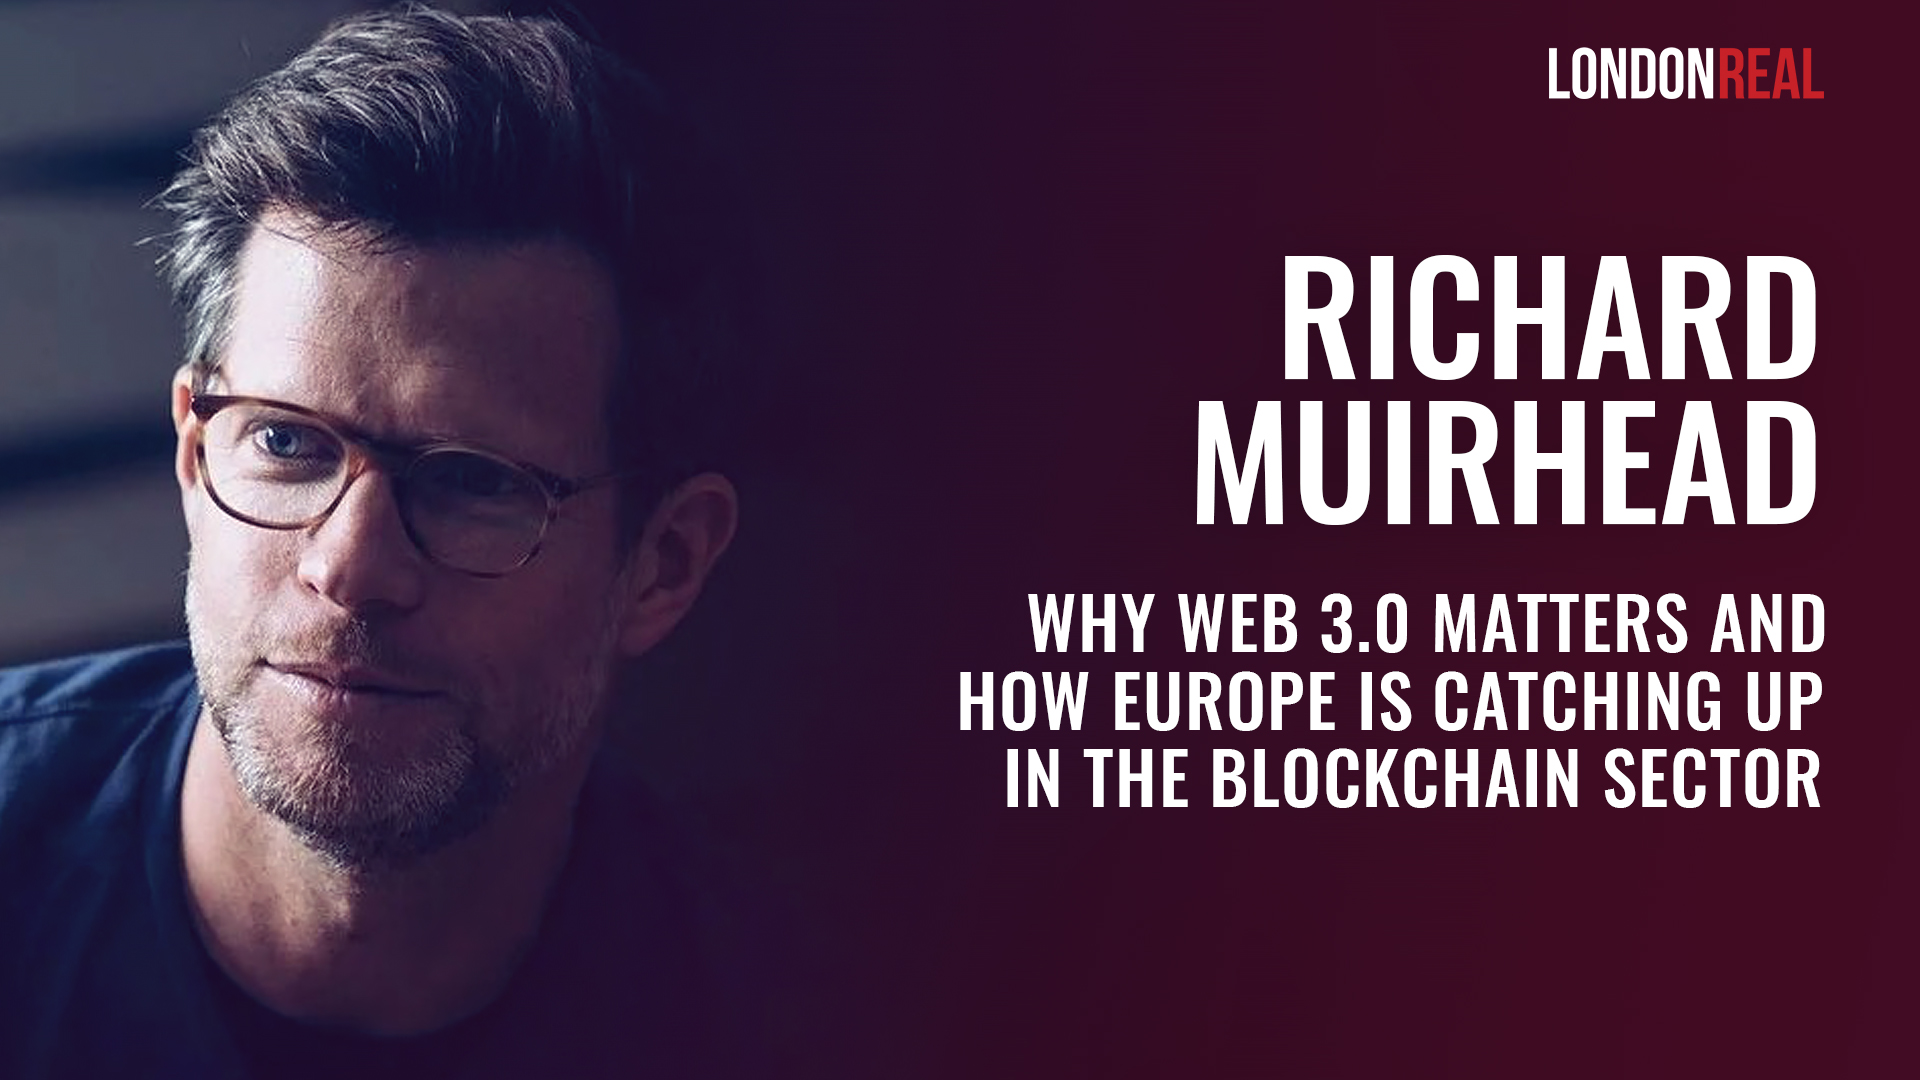 Richard Muirhead - Why Web 3.0 Matters and How Europe is Catching Up In the Blockchain Sector